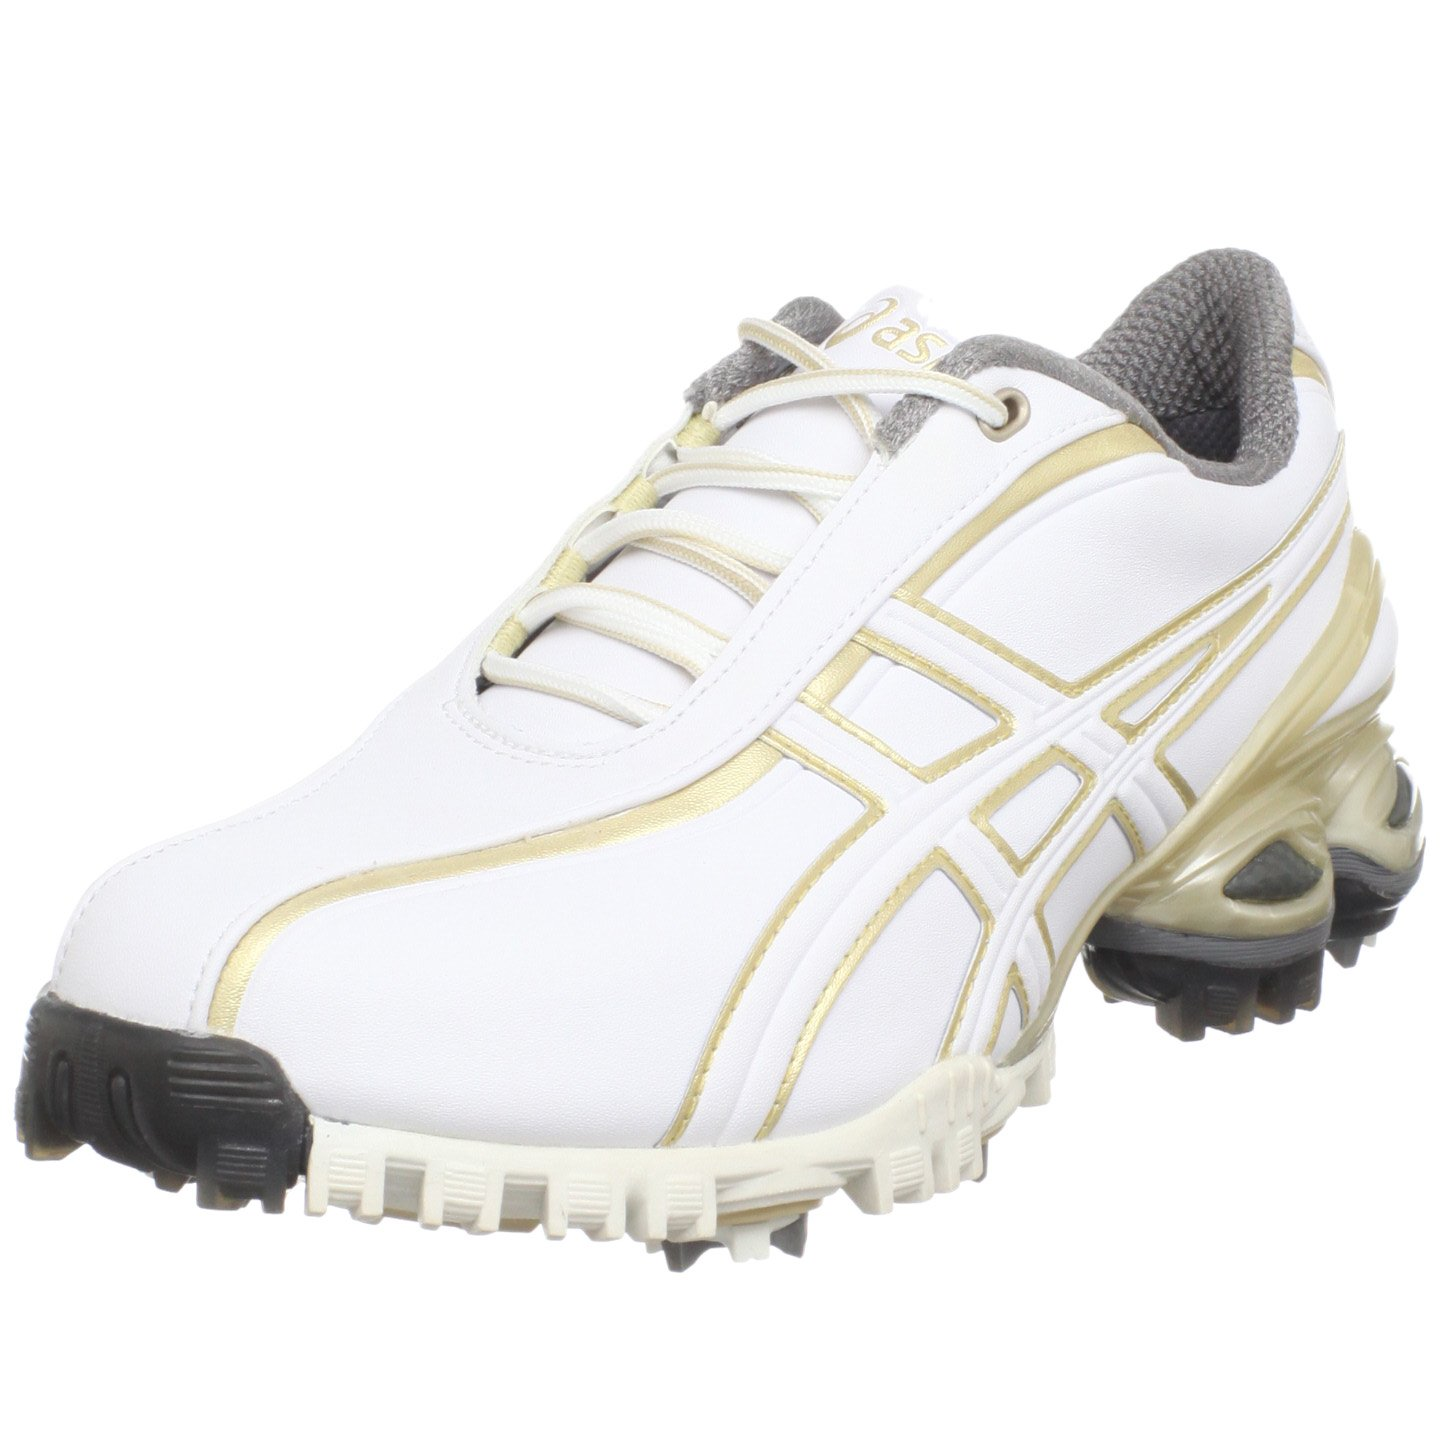 ASICS Women's Lady GEL-Ace Golf Shoe,White/Champagne Gold,6 M US